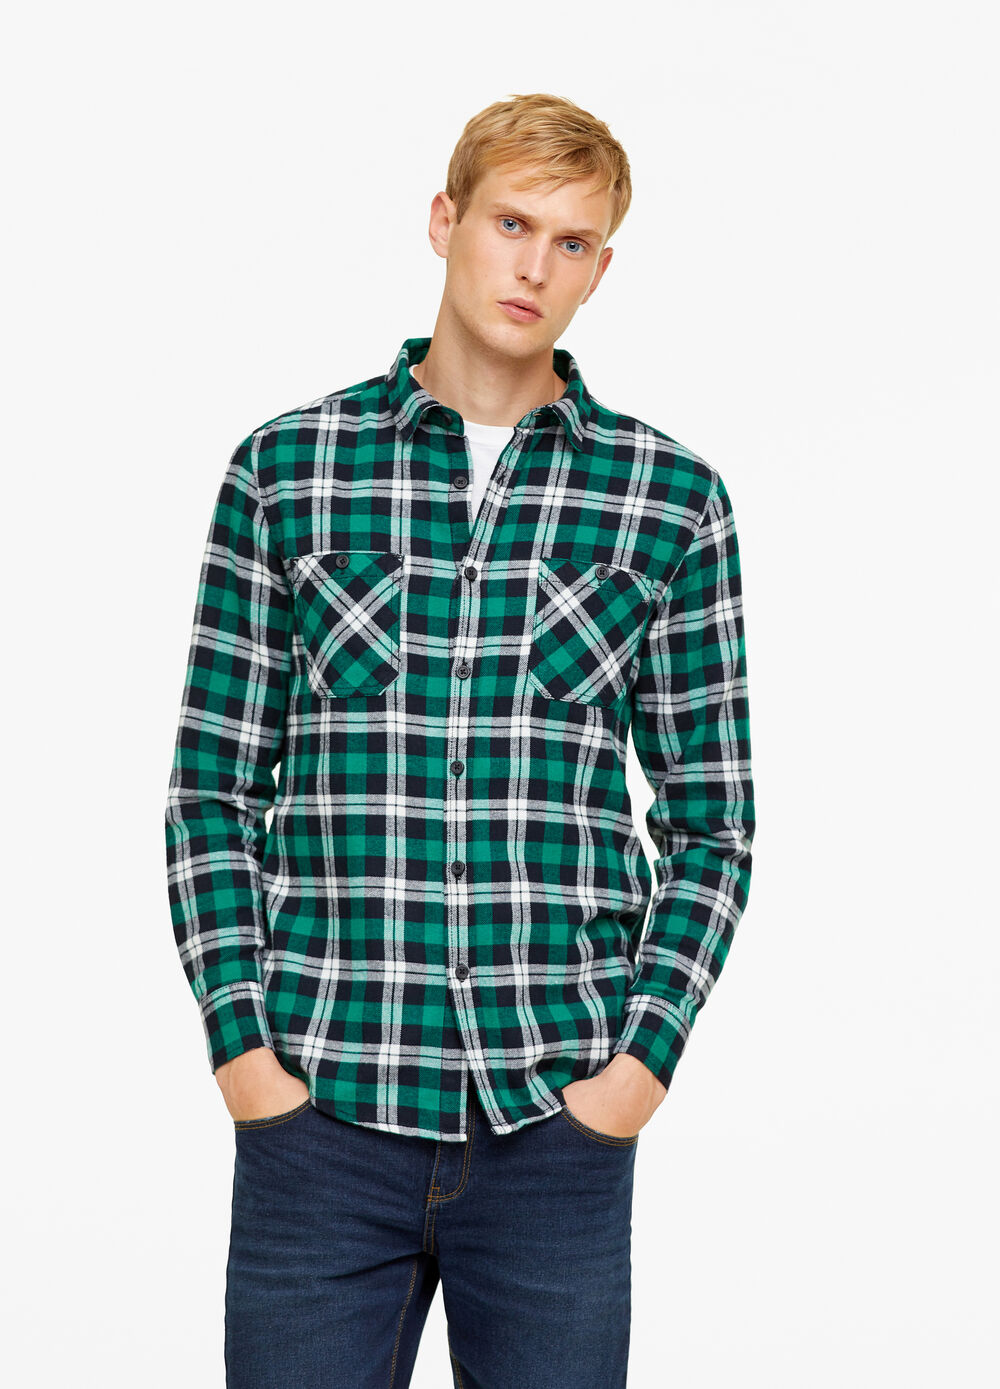 100% cotton shirt with two pockets